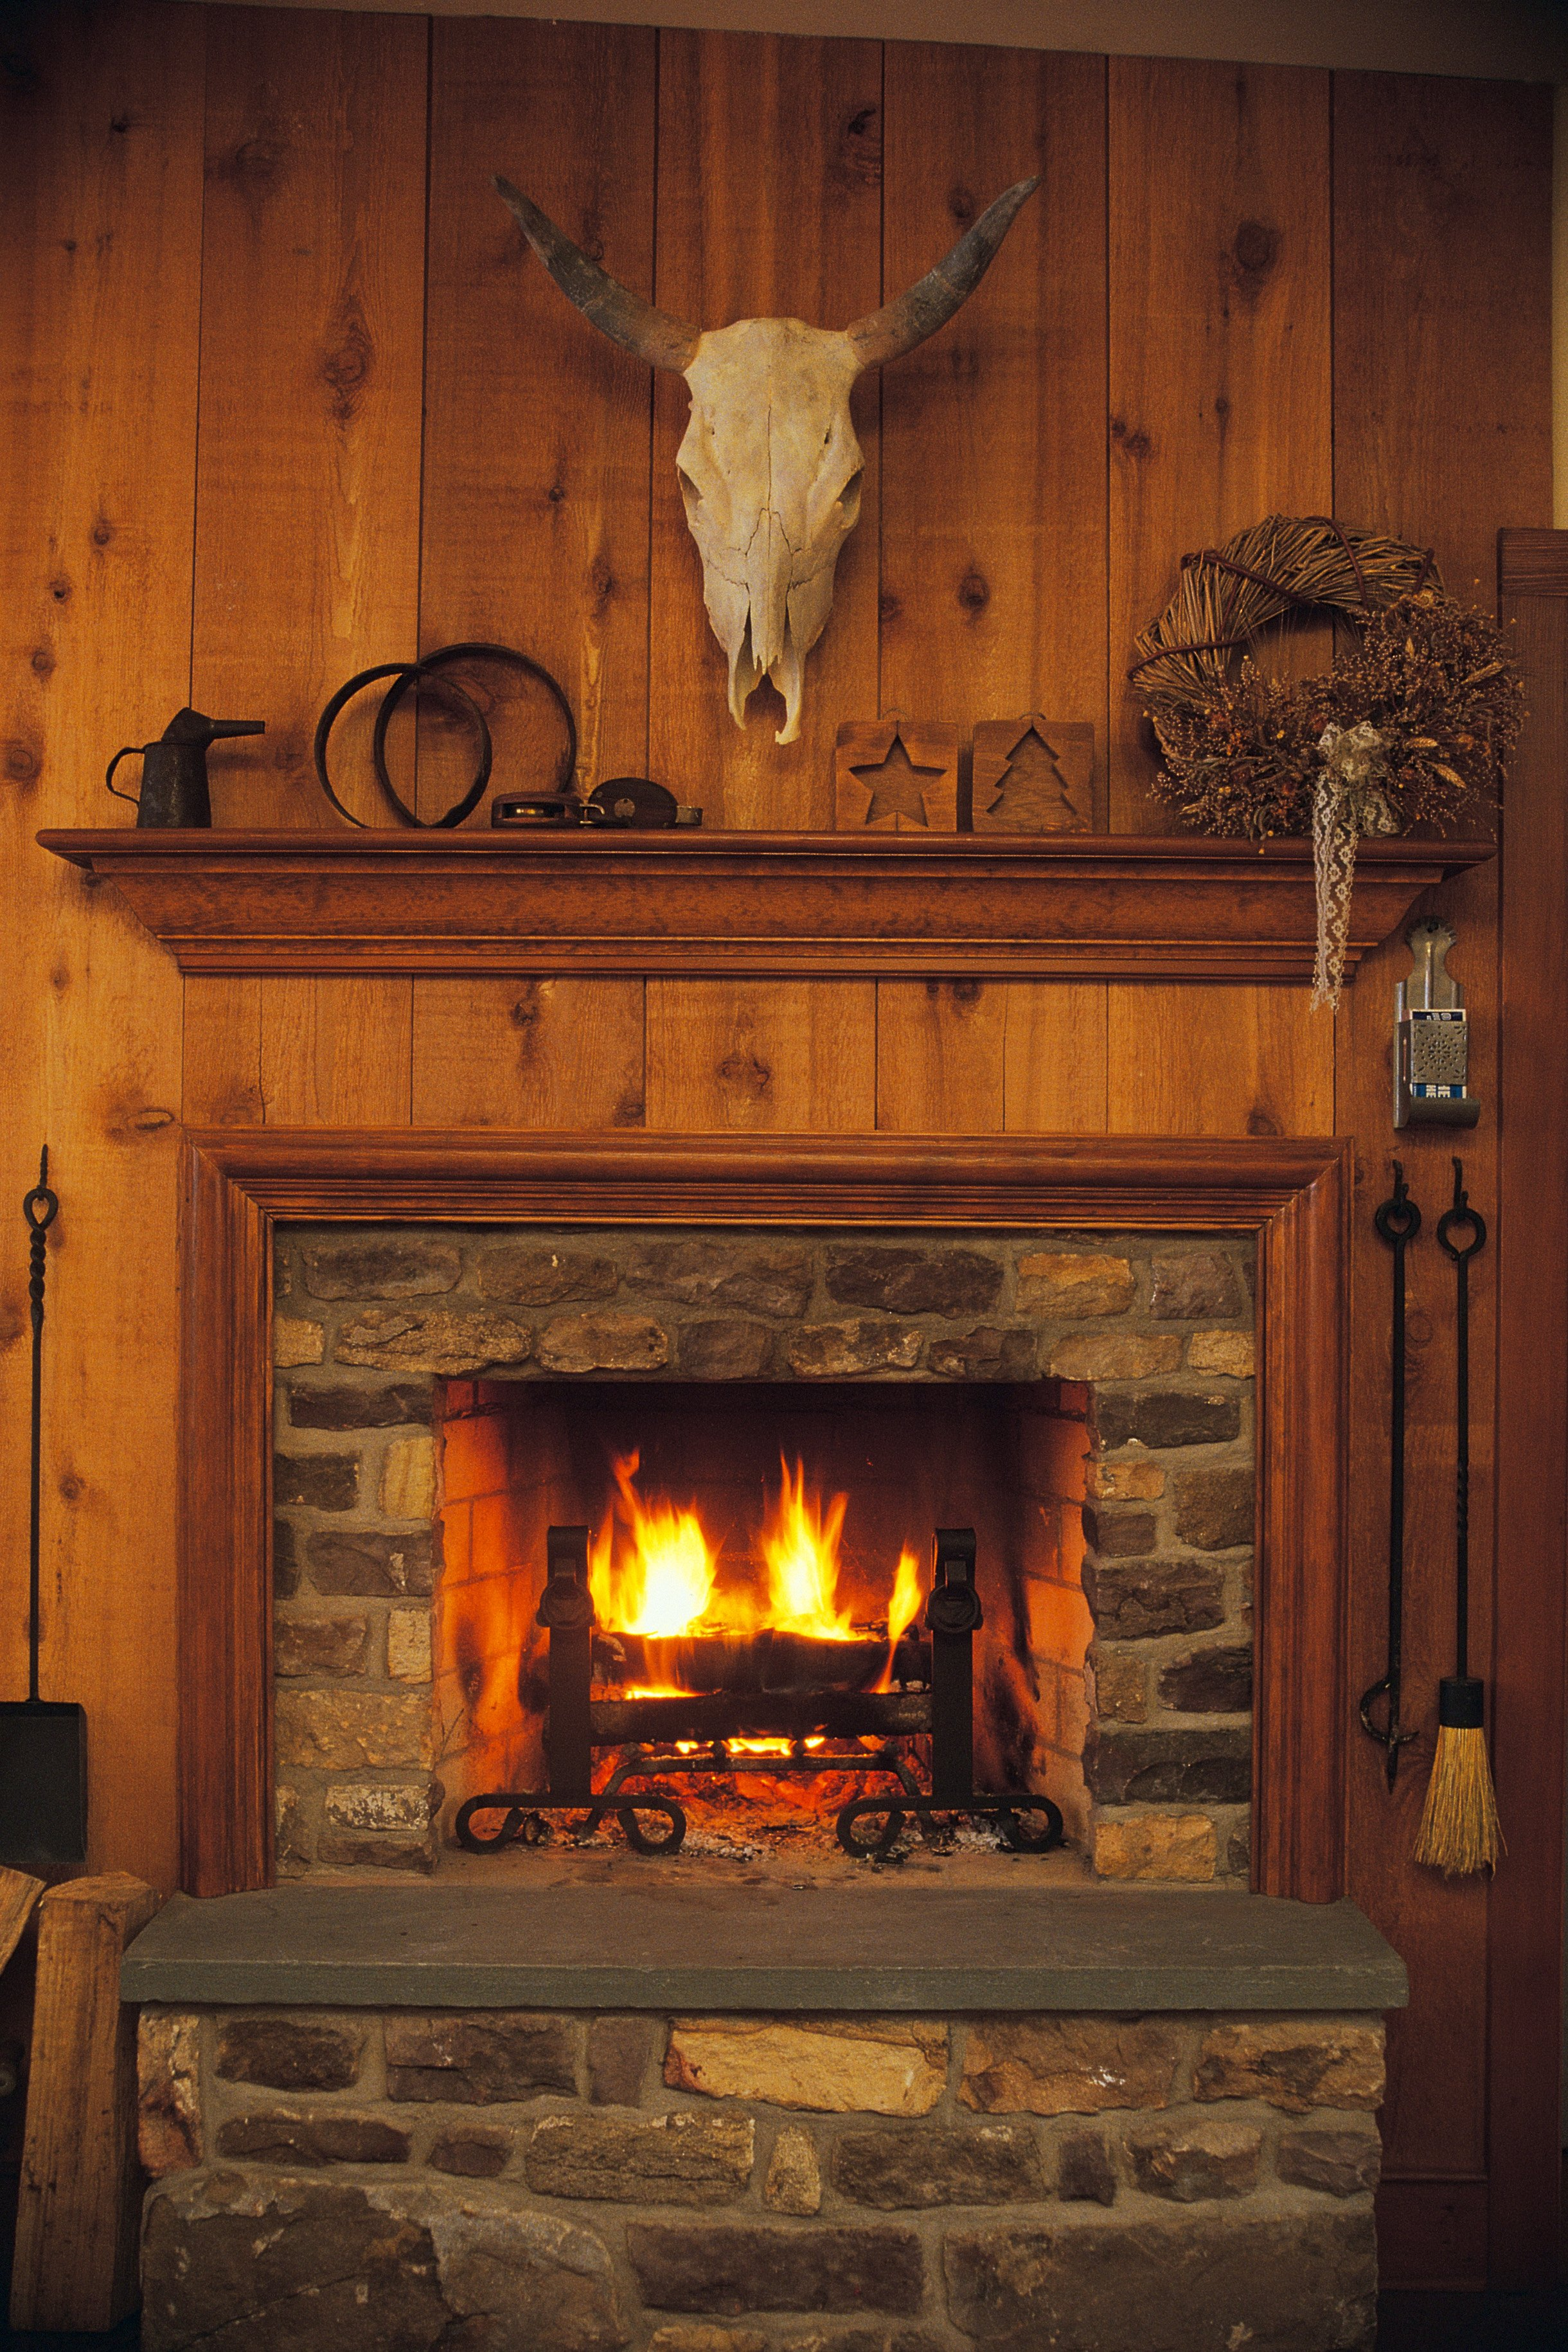 heat are only fireplace specs getdynamicimage back into shield more different not to chimney your fireback specific reflector wall sizes direct these protect designed but with windy fit fireplaces